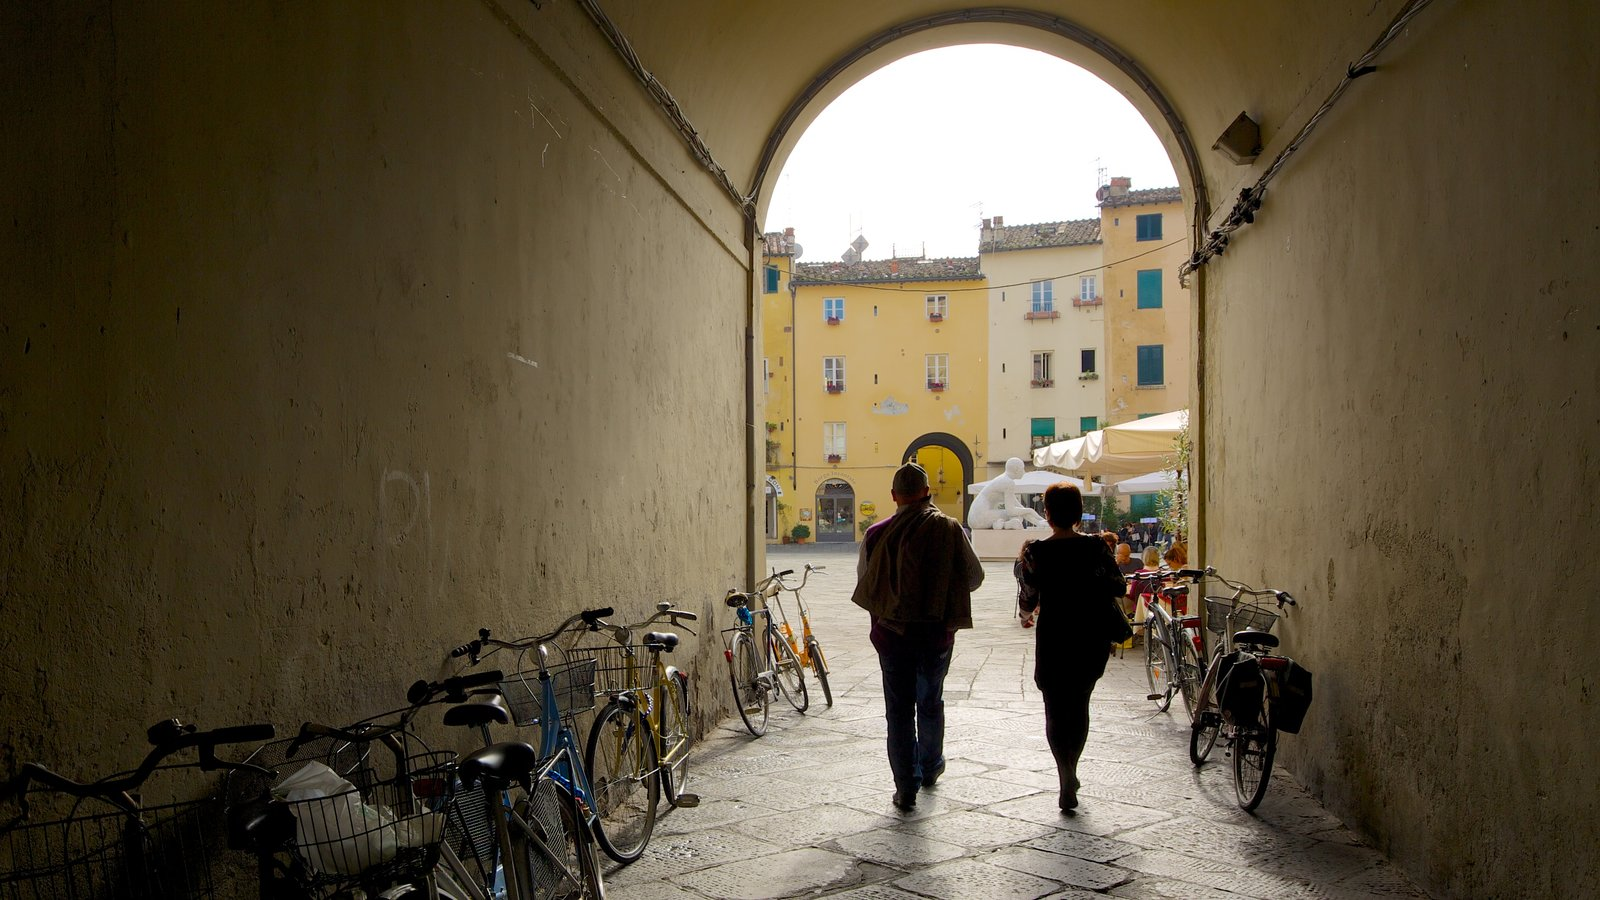 Piazza dell\'Anfiteatro showing street scenes, heritage architecture and cycling